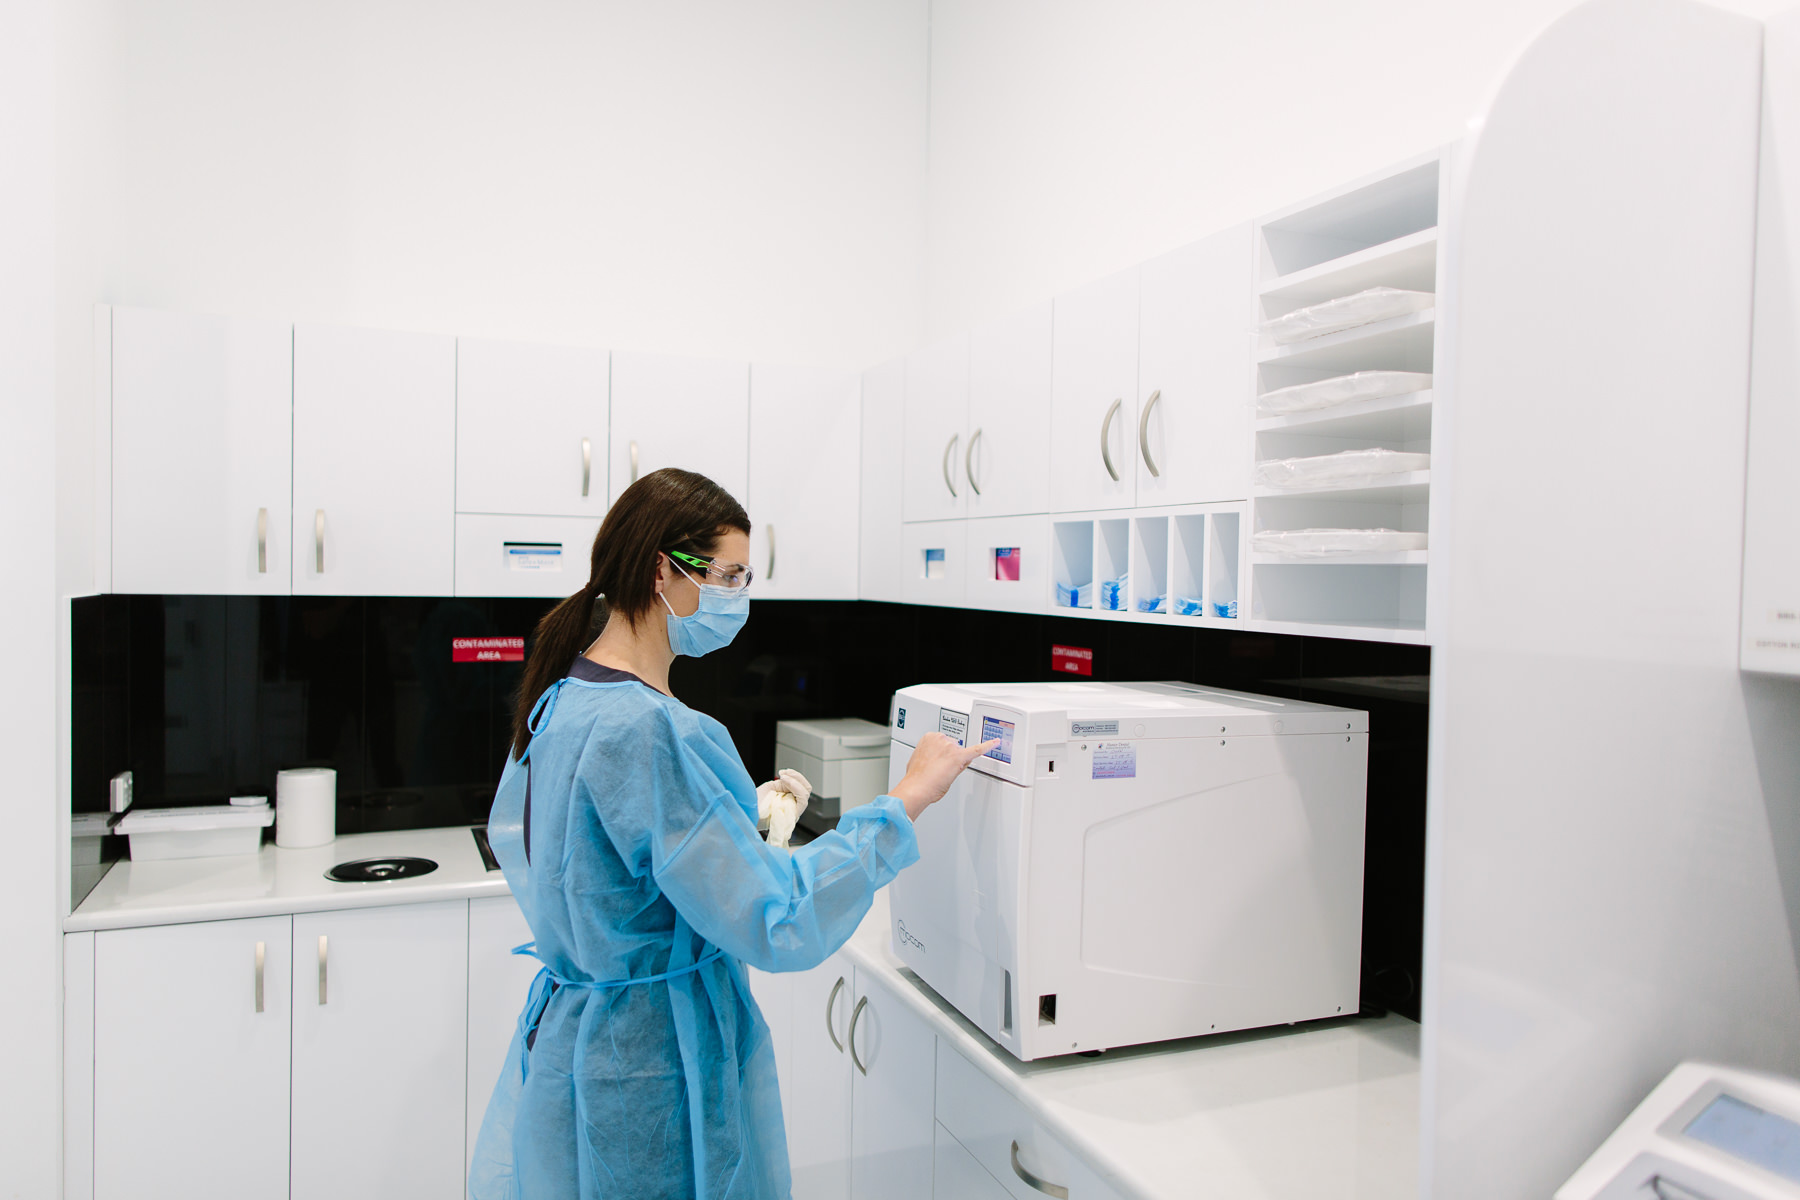 Our sterilisation bay where each instrument goes through a stringent process to ensure the safety and health of our patients